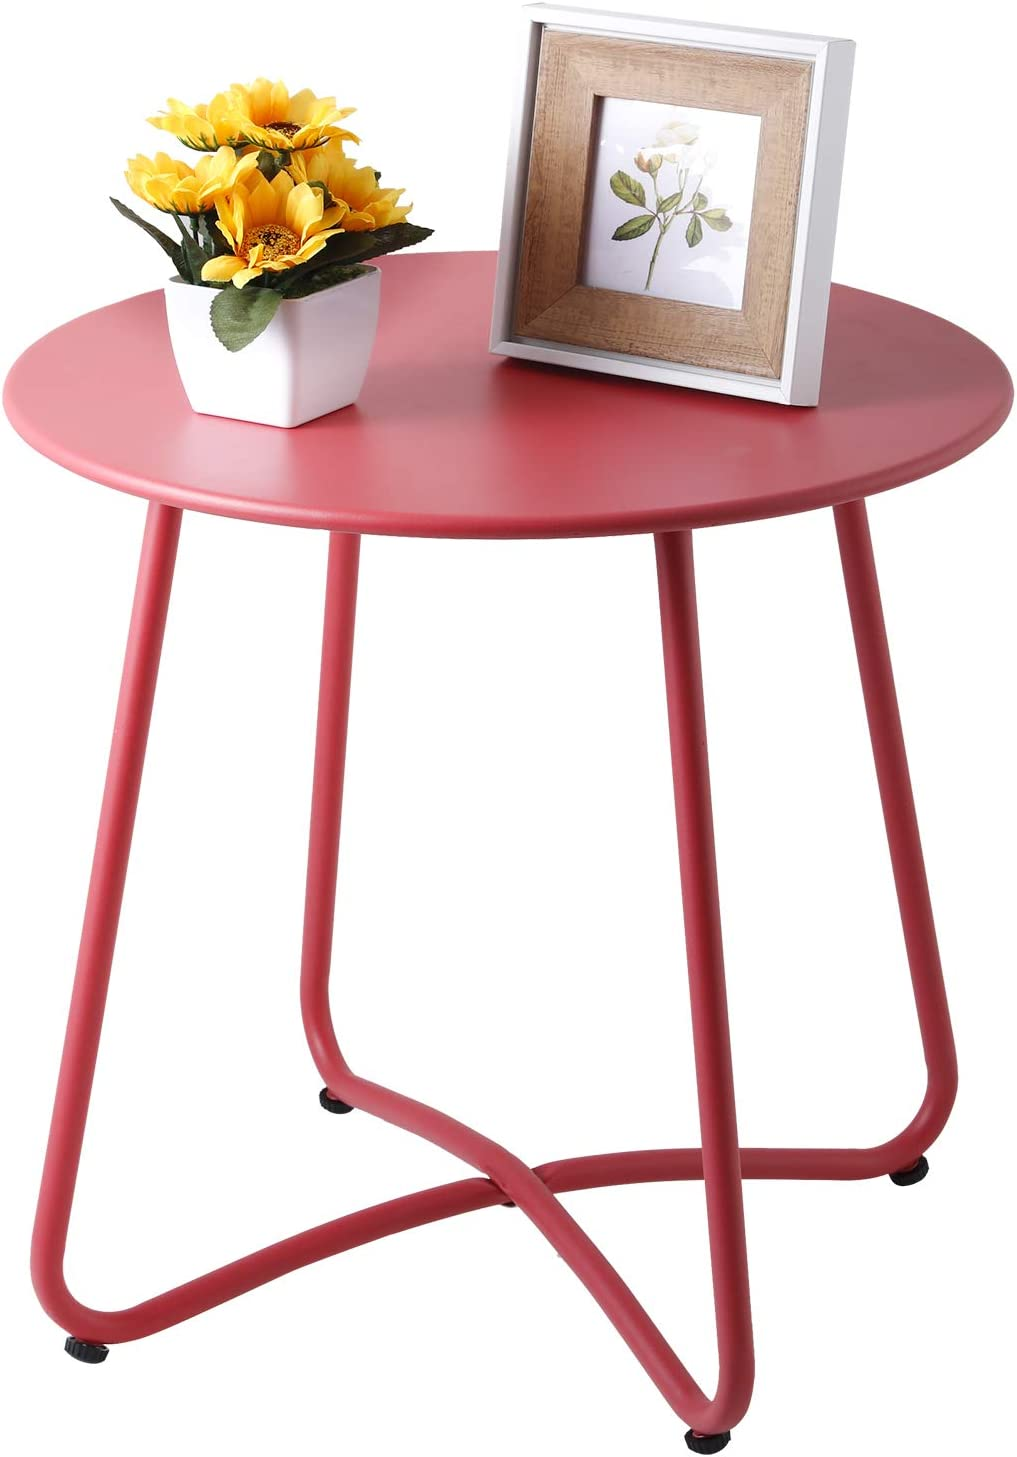 Small Round Metal Side Table, Anti-Rust Outdoor Patio Side Table Coffee Table for Porch, Yard, Balcony, Garden (Red)